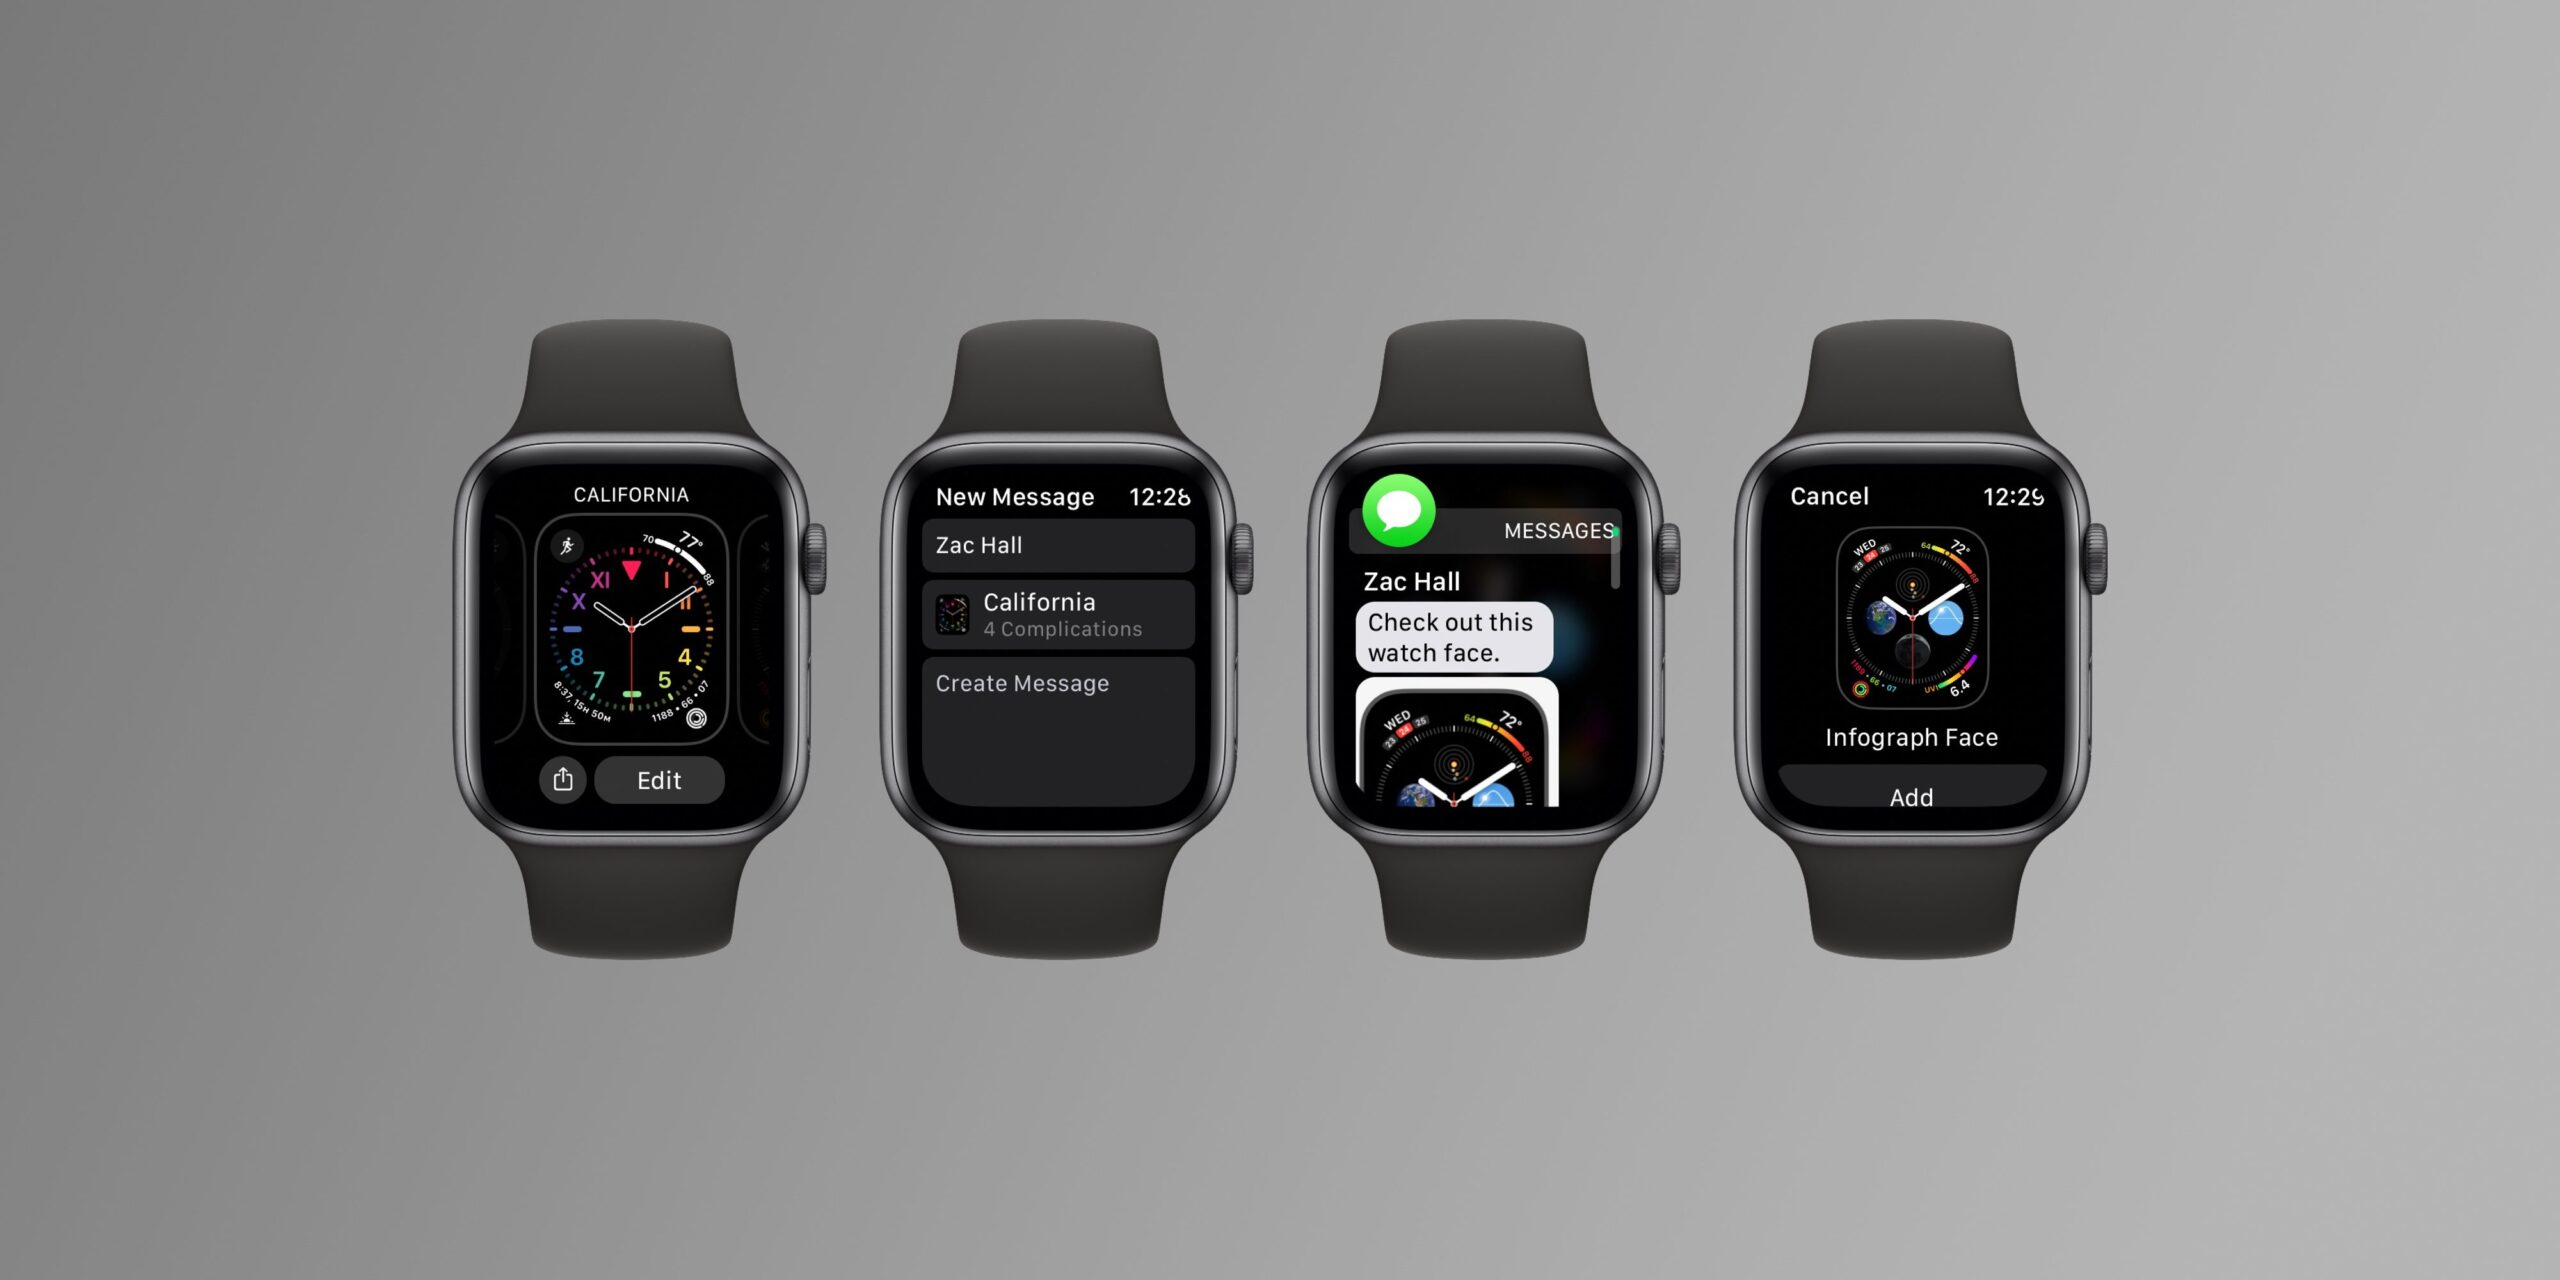 watchOS 7 brings ability to share watch faces